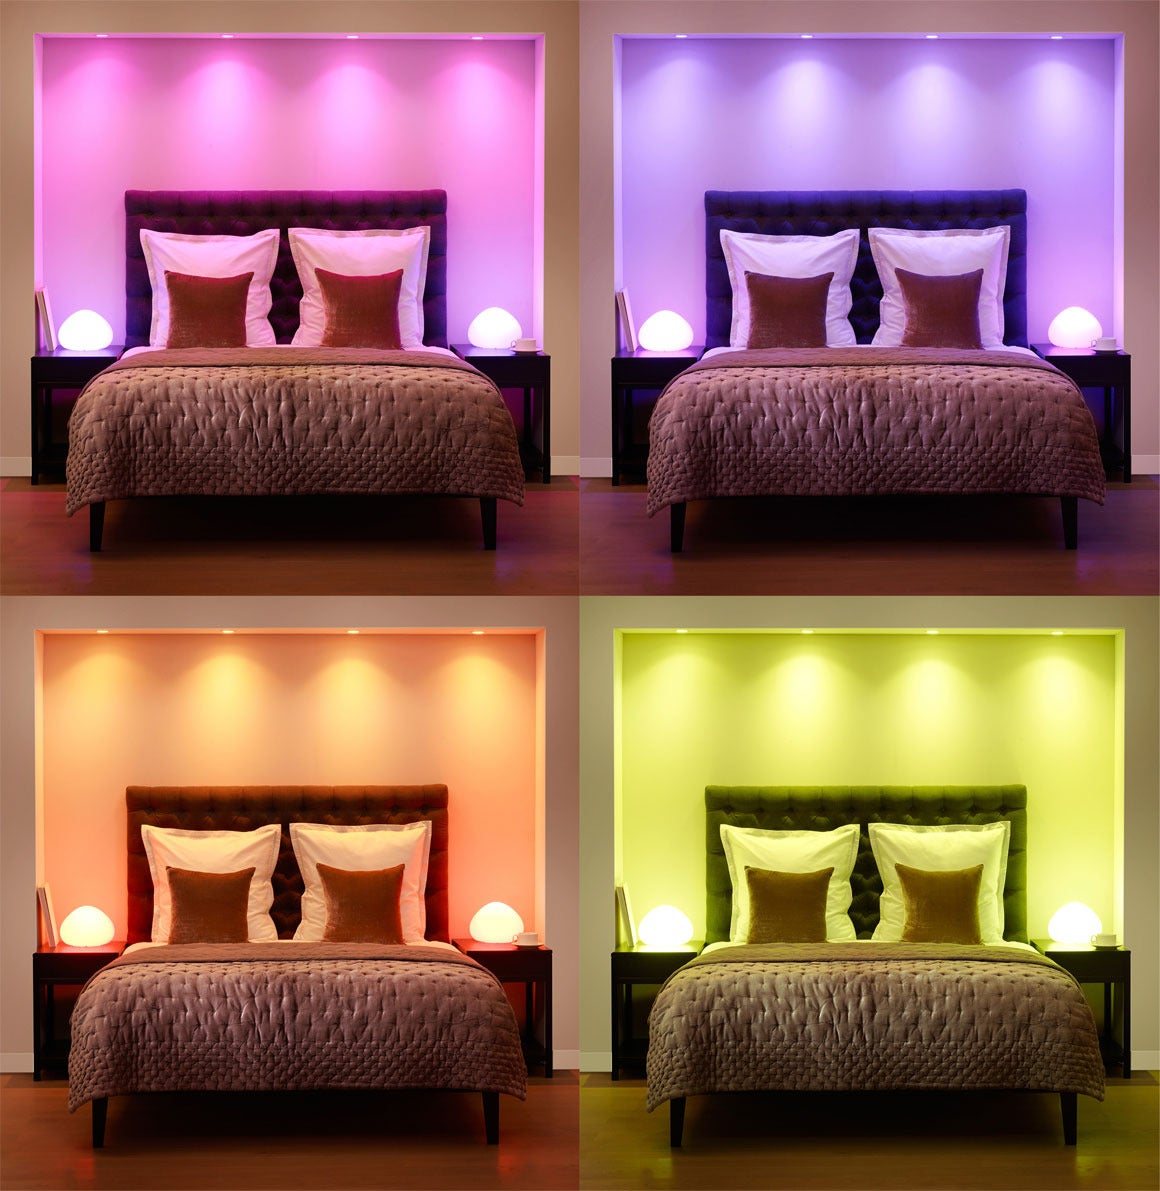 how to optimize your home lighting design based on color